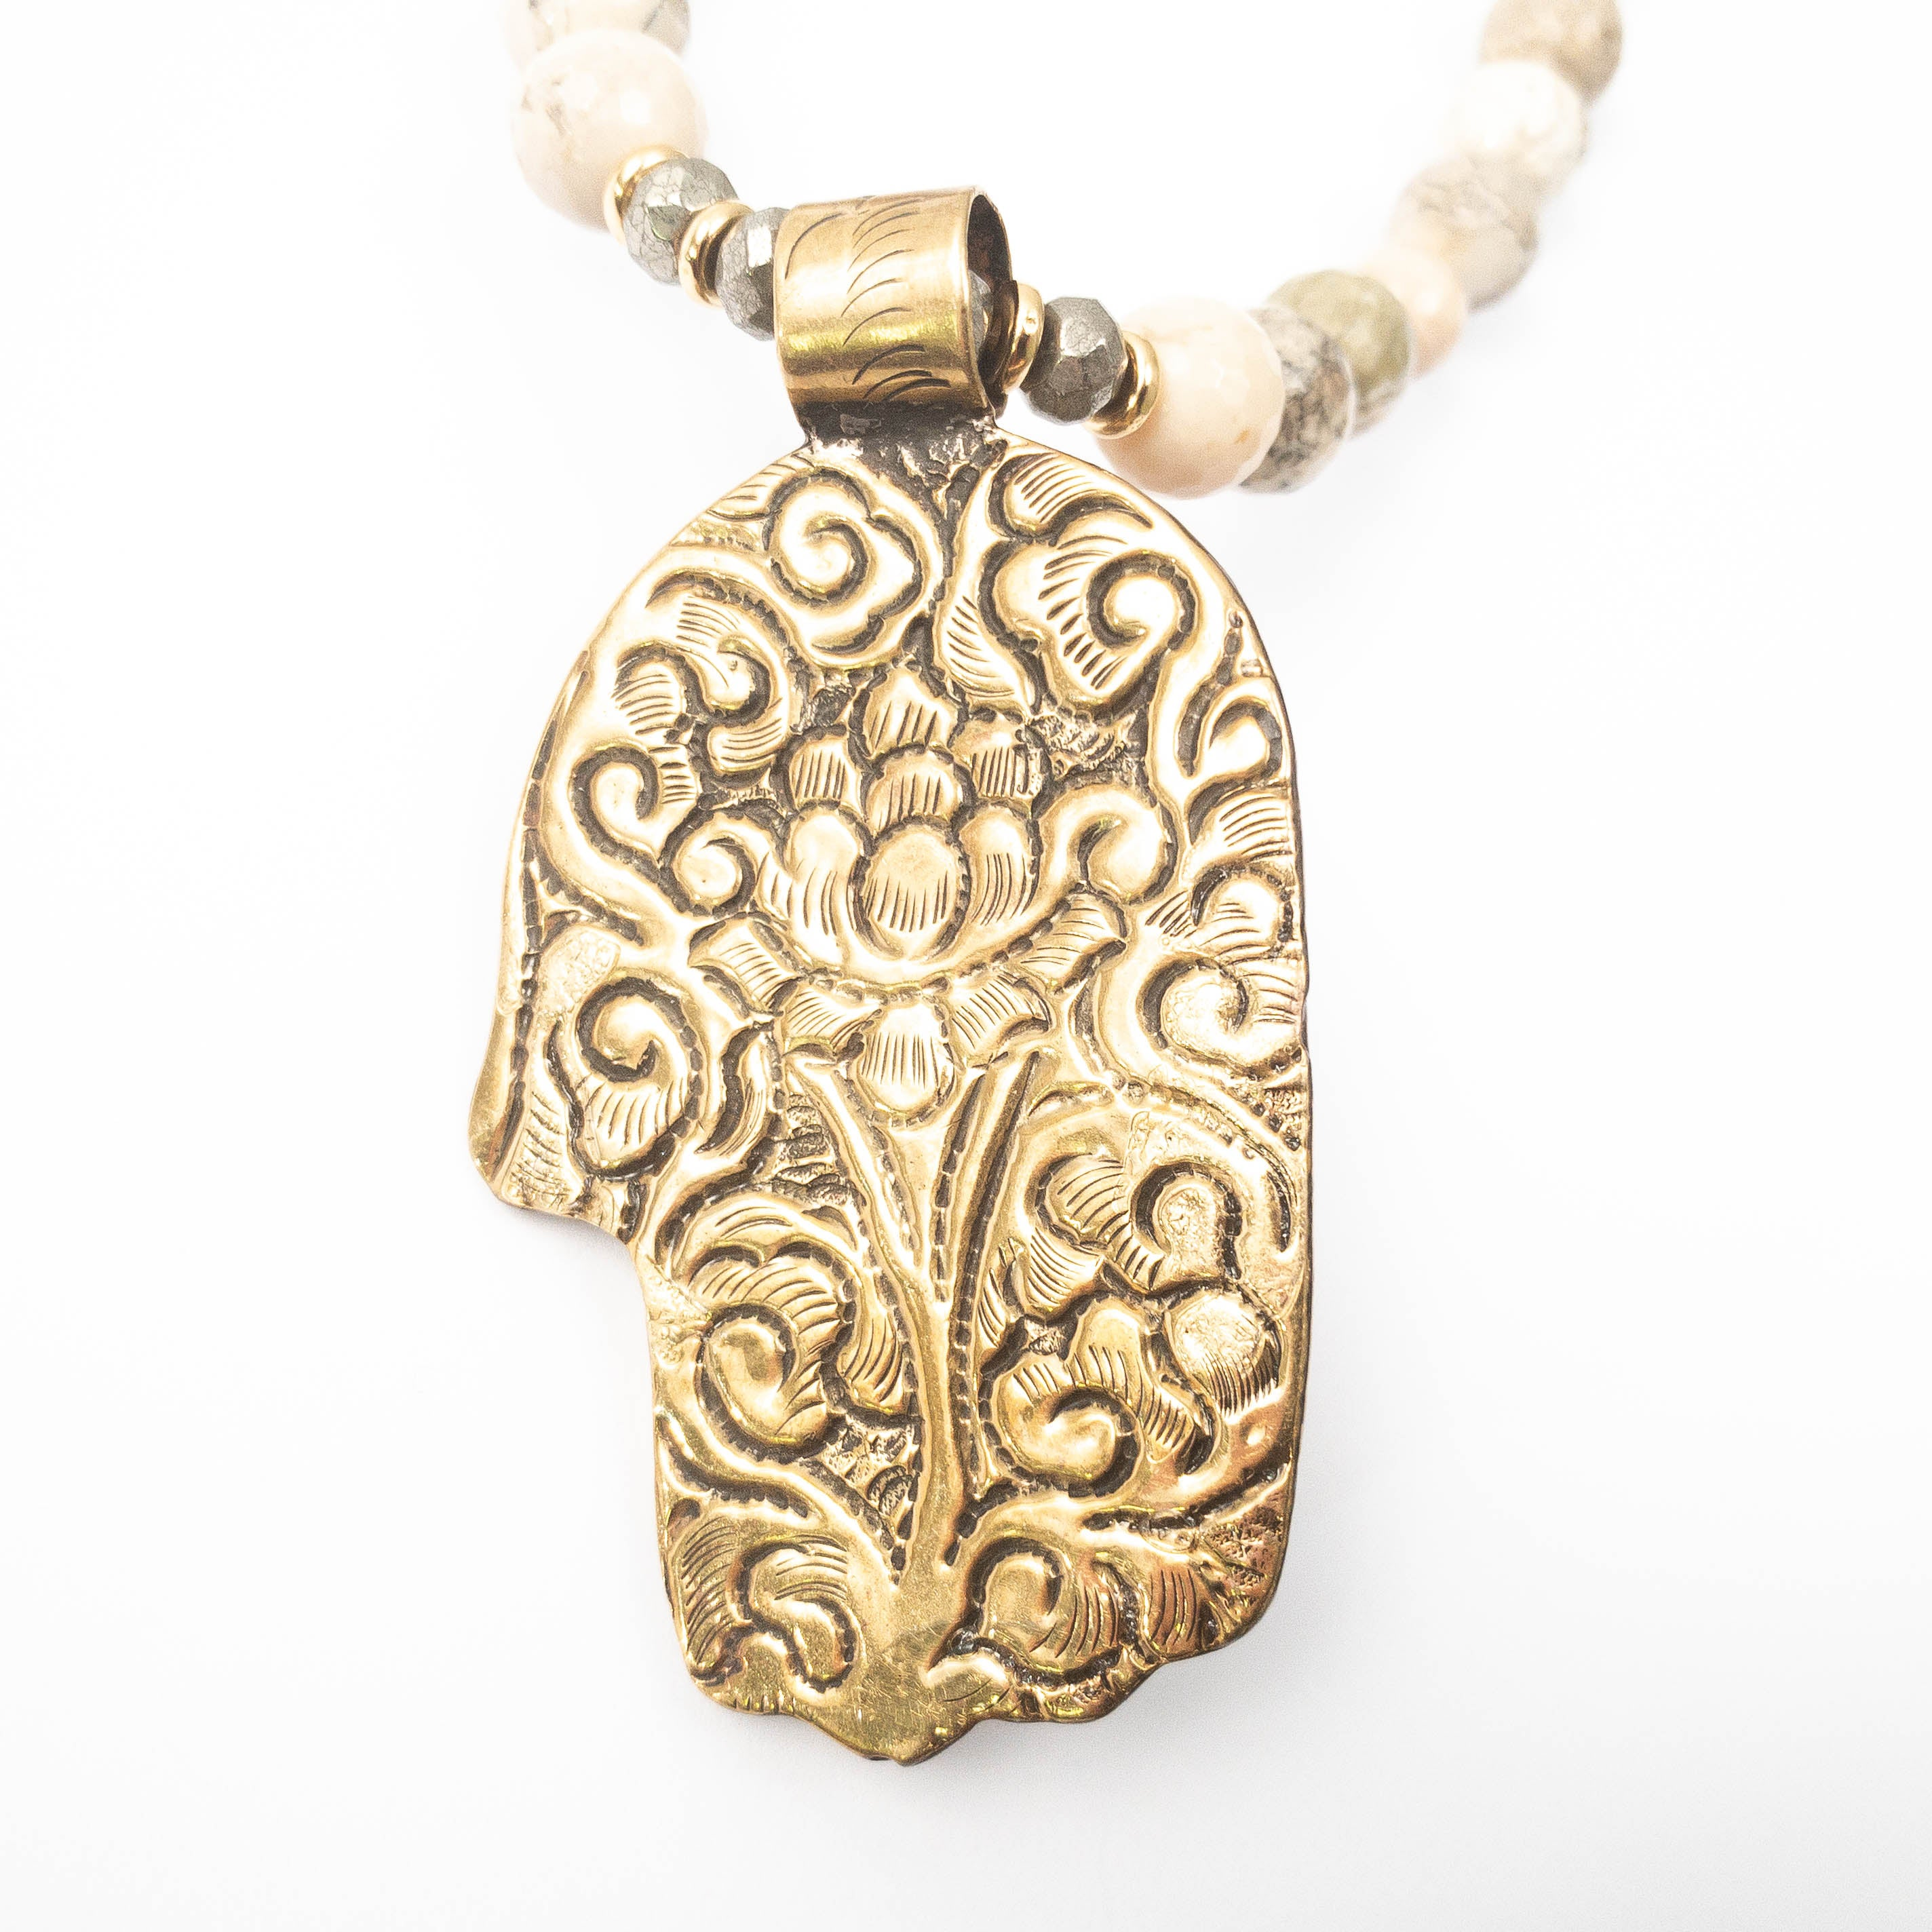 Nepali Repousse Hamsa Pendant on African Opal Necklace